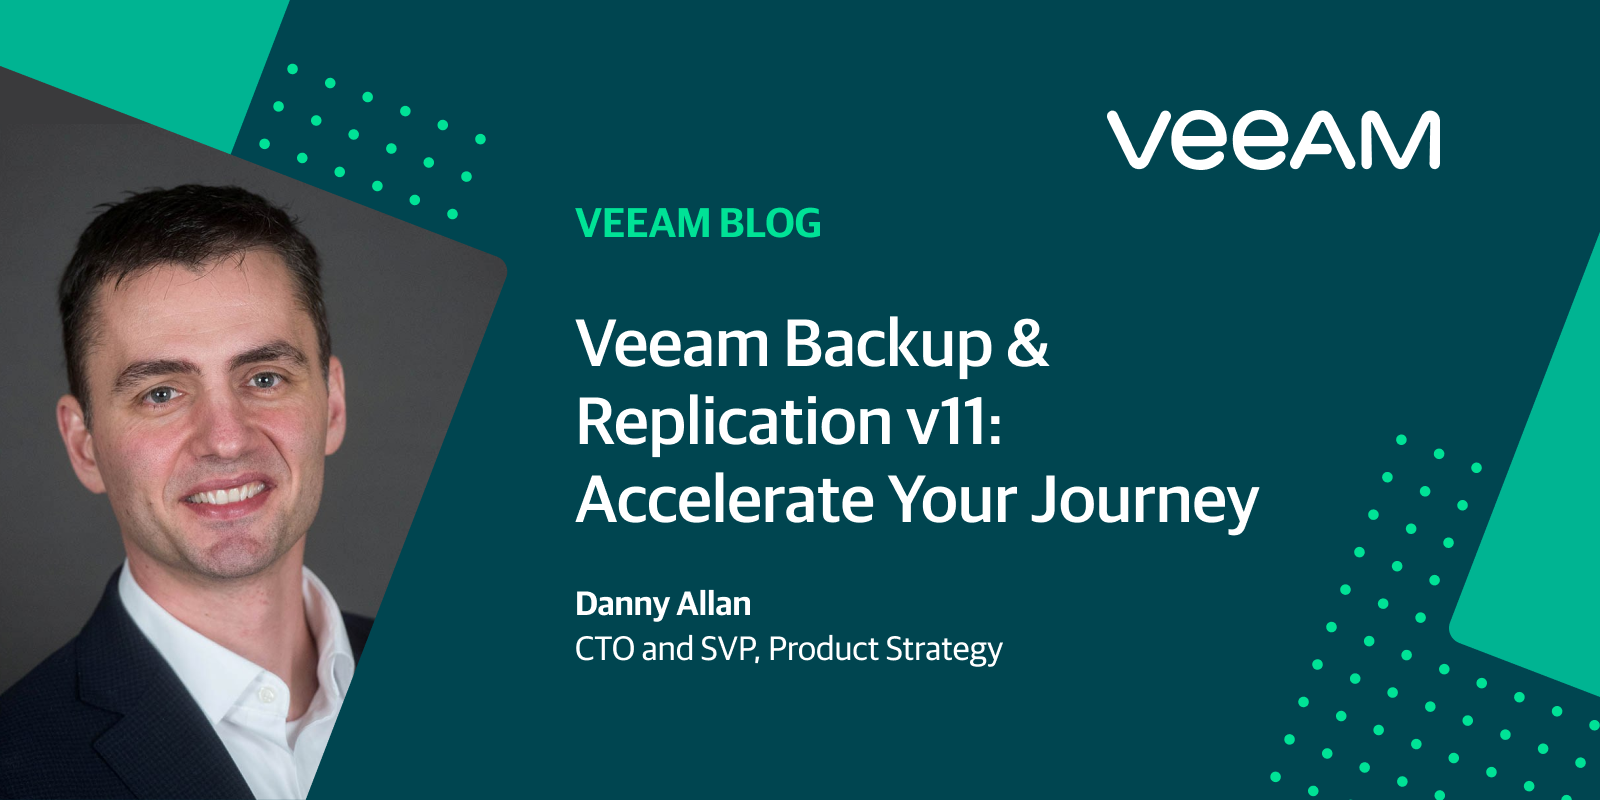 Veeam Backup & Replication v11: Accelerate Your Journey